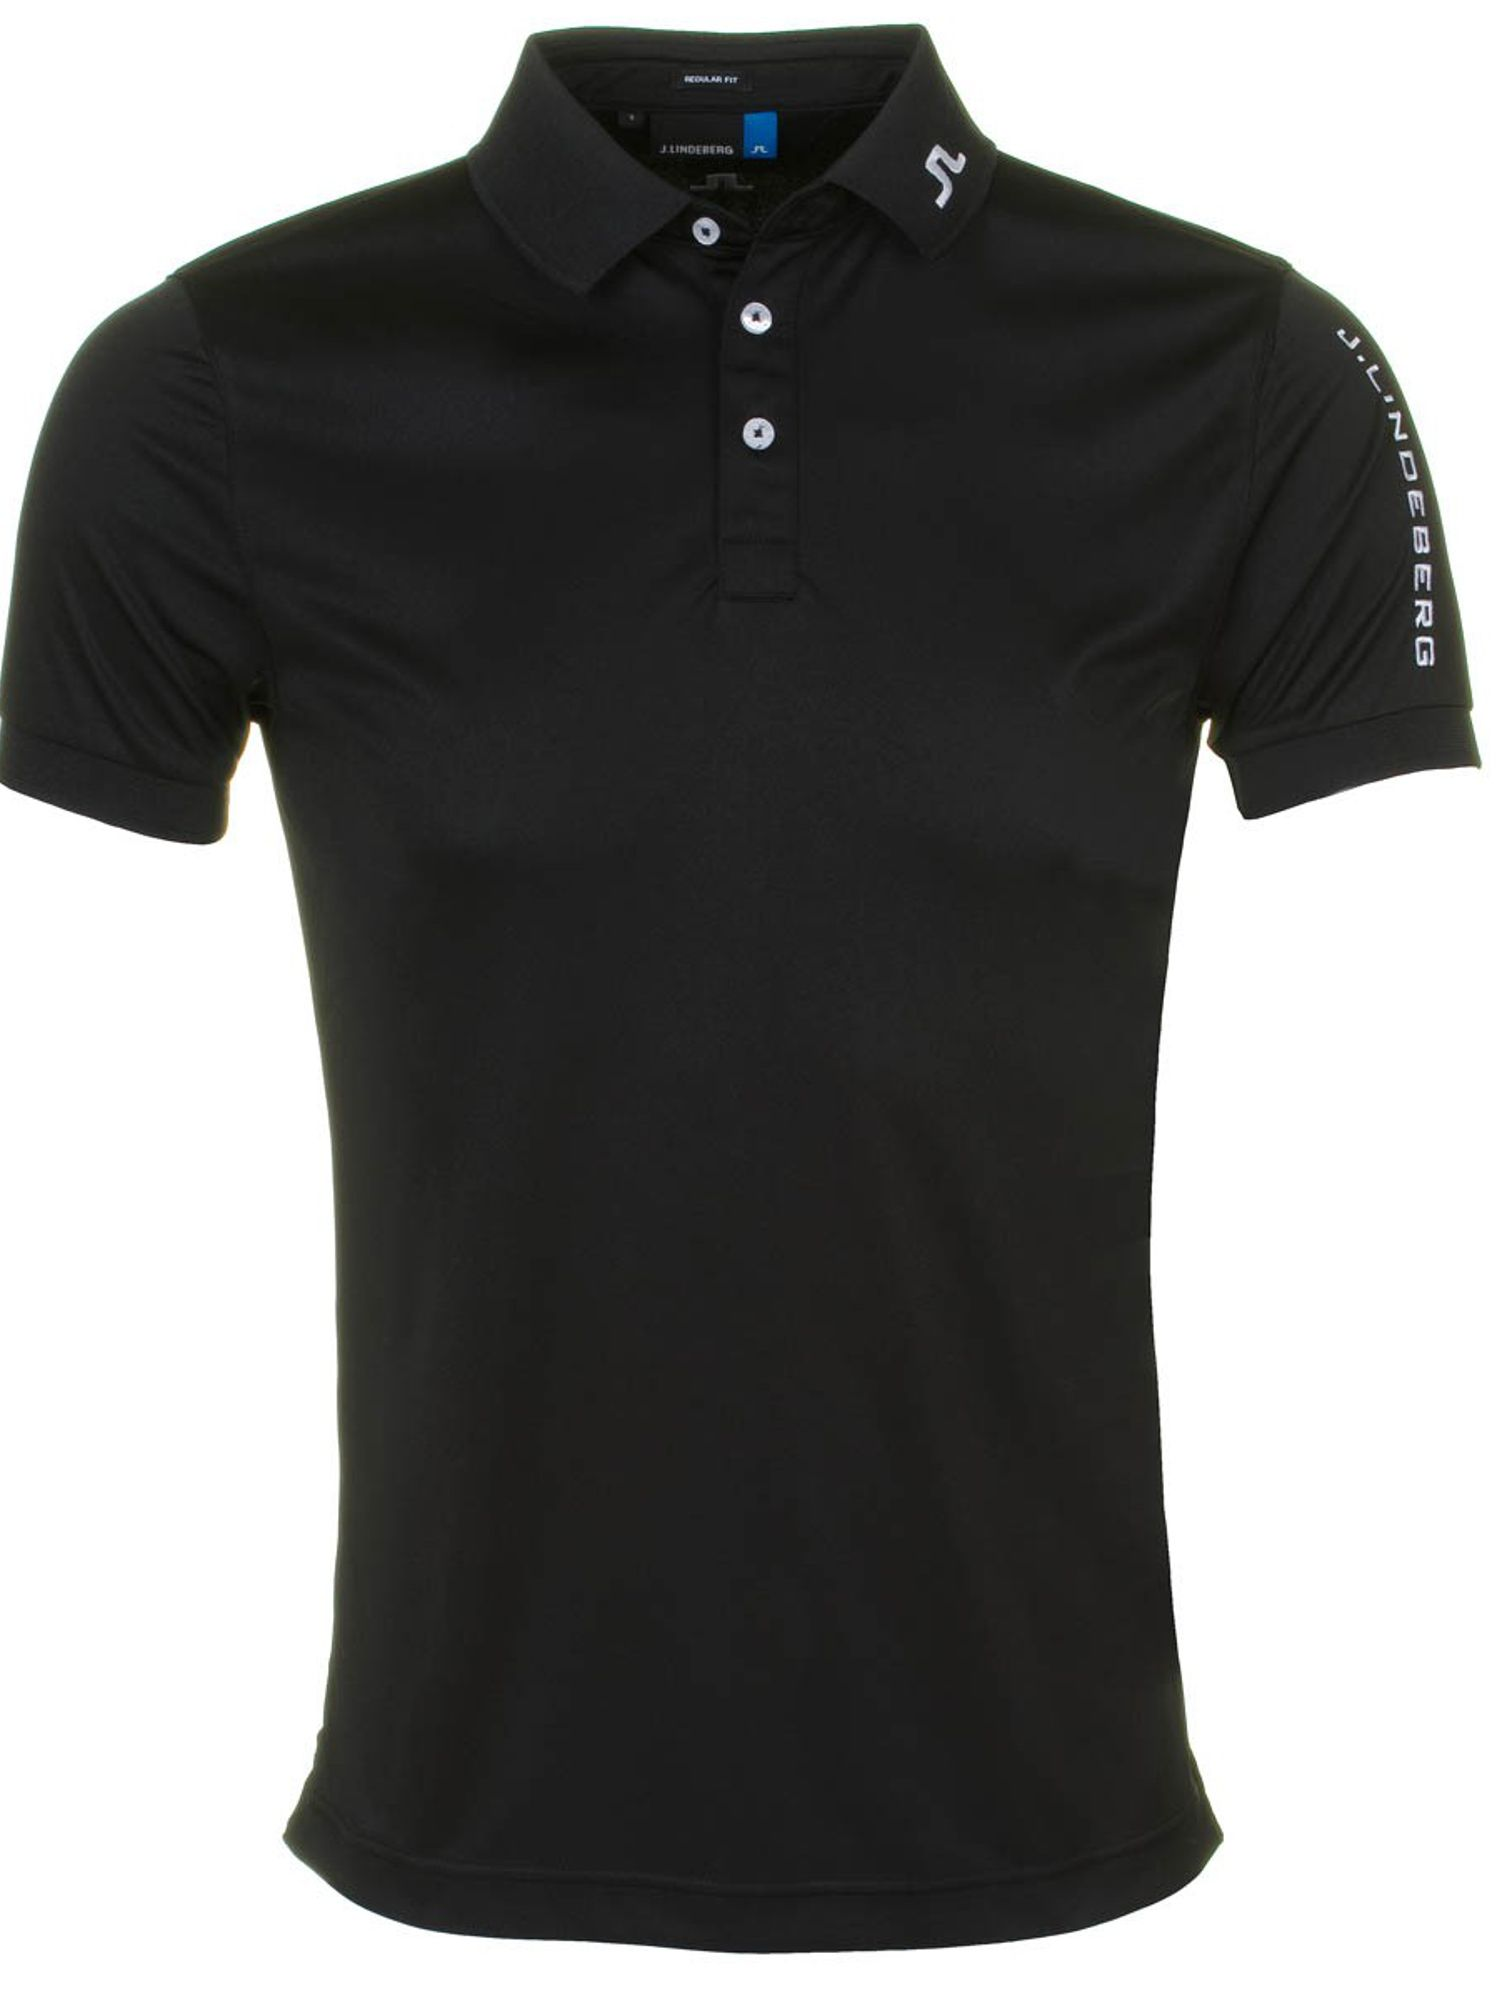 Men's J Lindeberg Golf Tour Tech Tx Polo Shirt, Black